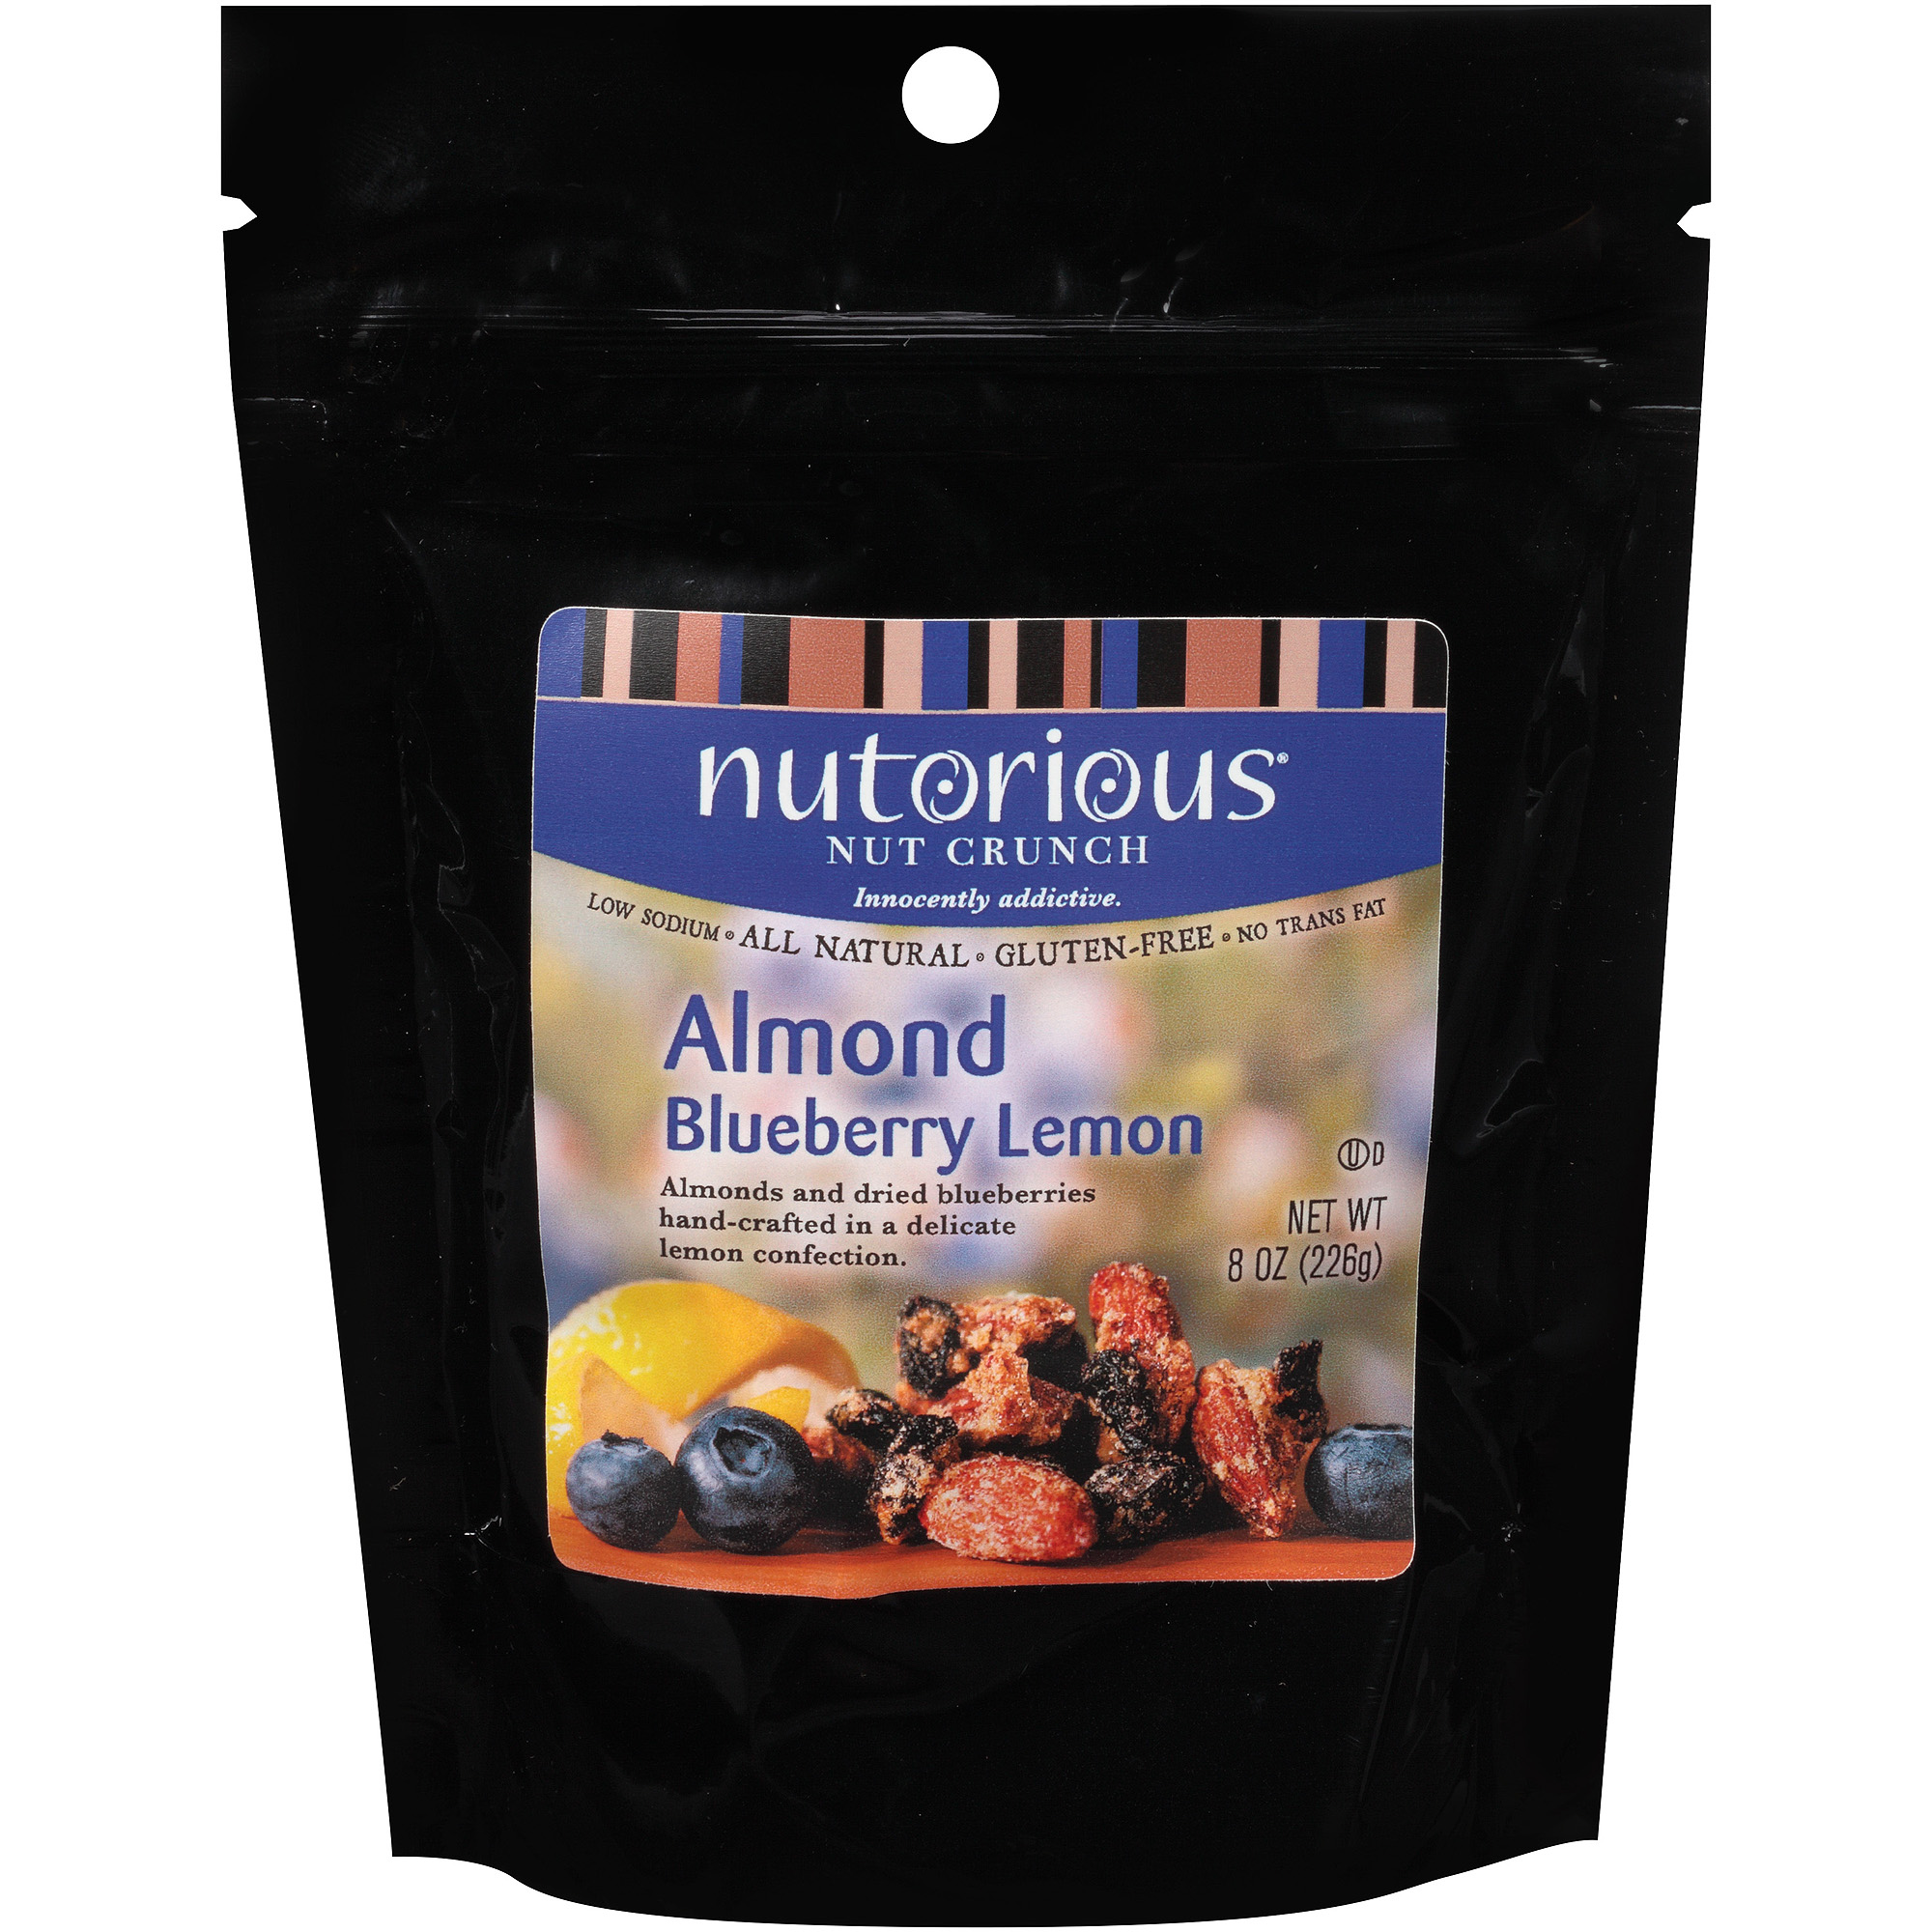 Nutorious Almond Blueberry Lemon Nut Crunch, 8 oz